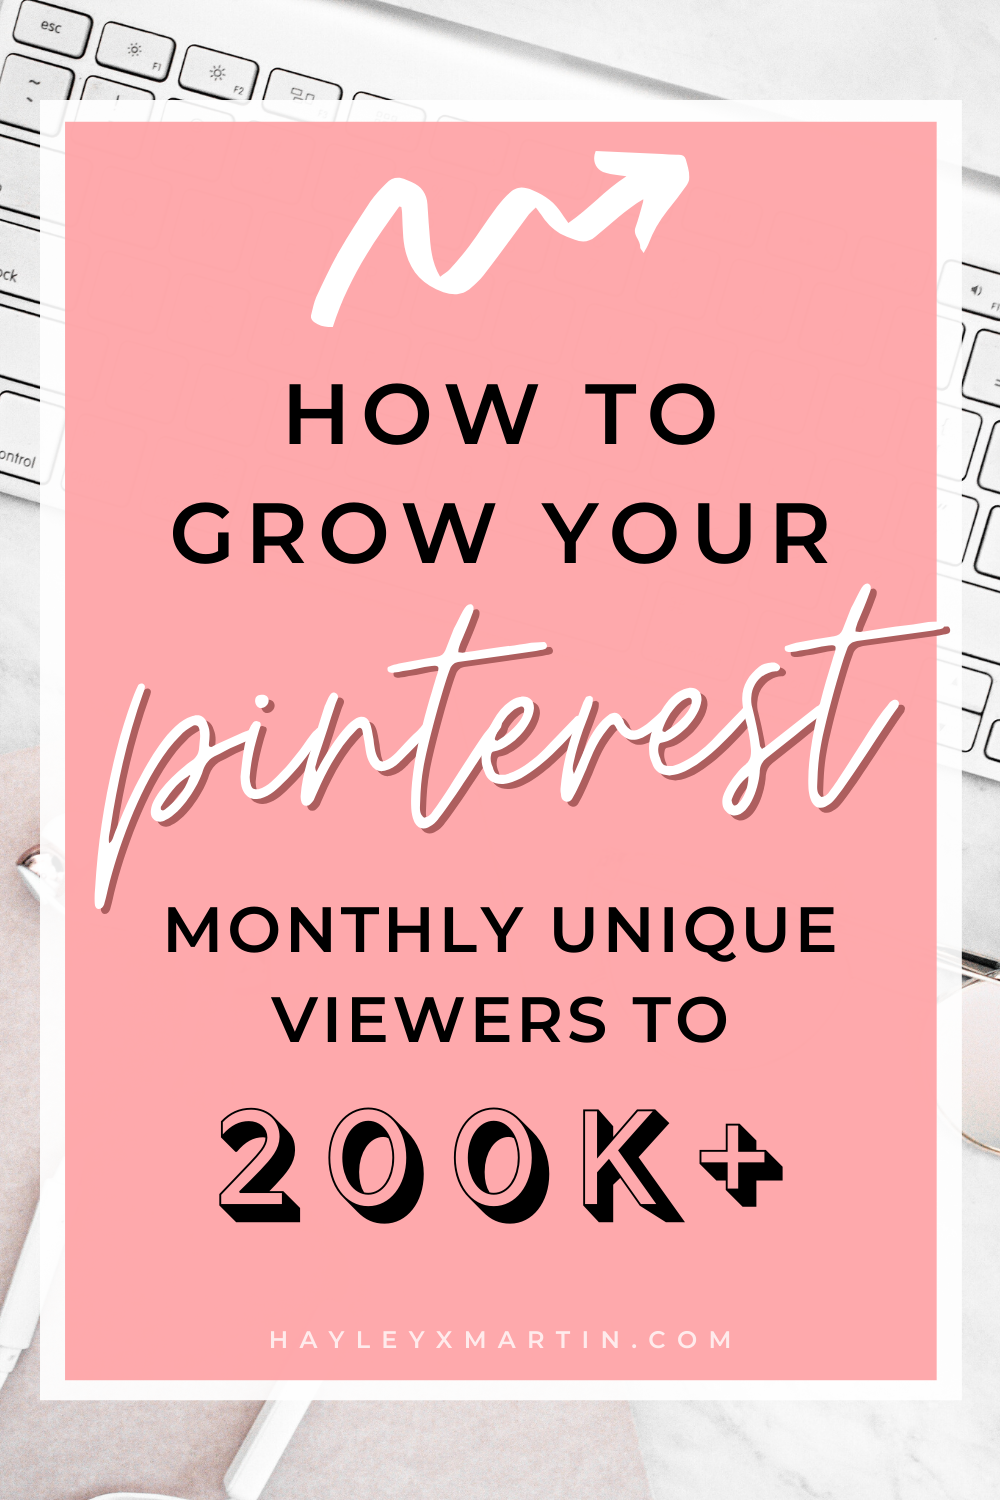 HOW TO GROW YOUR PINTEREST MONTHLY VIEWERS TO 200K+ | HAYLEYXMARTIN